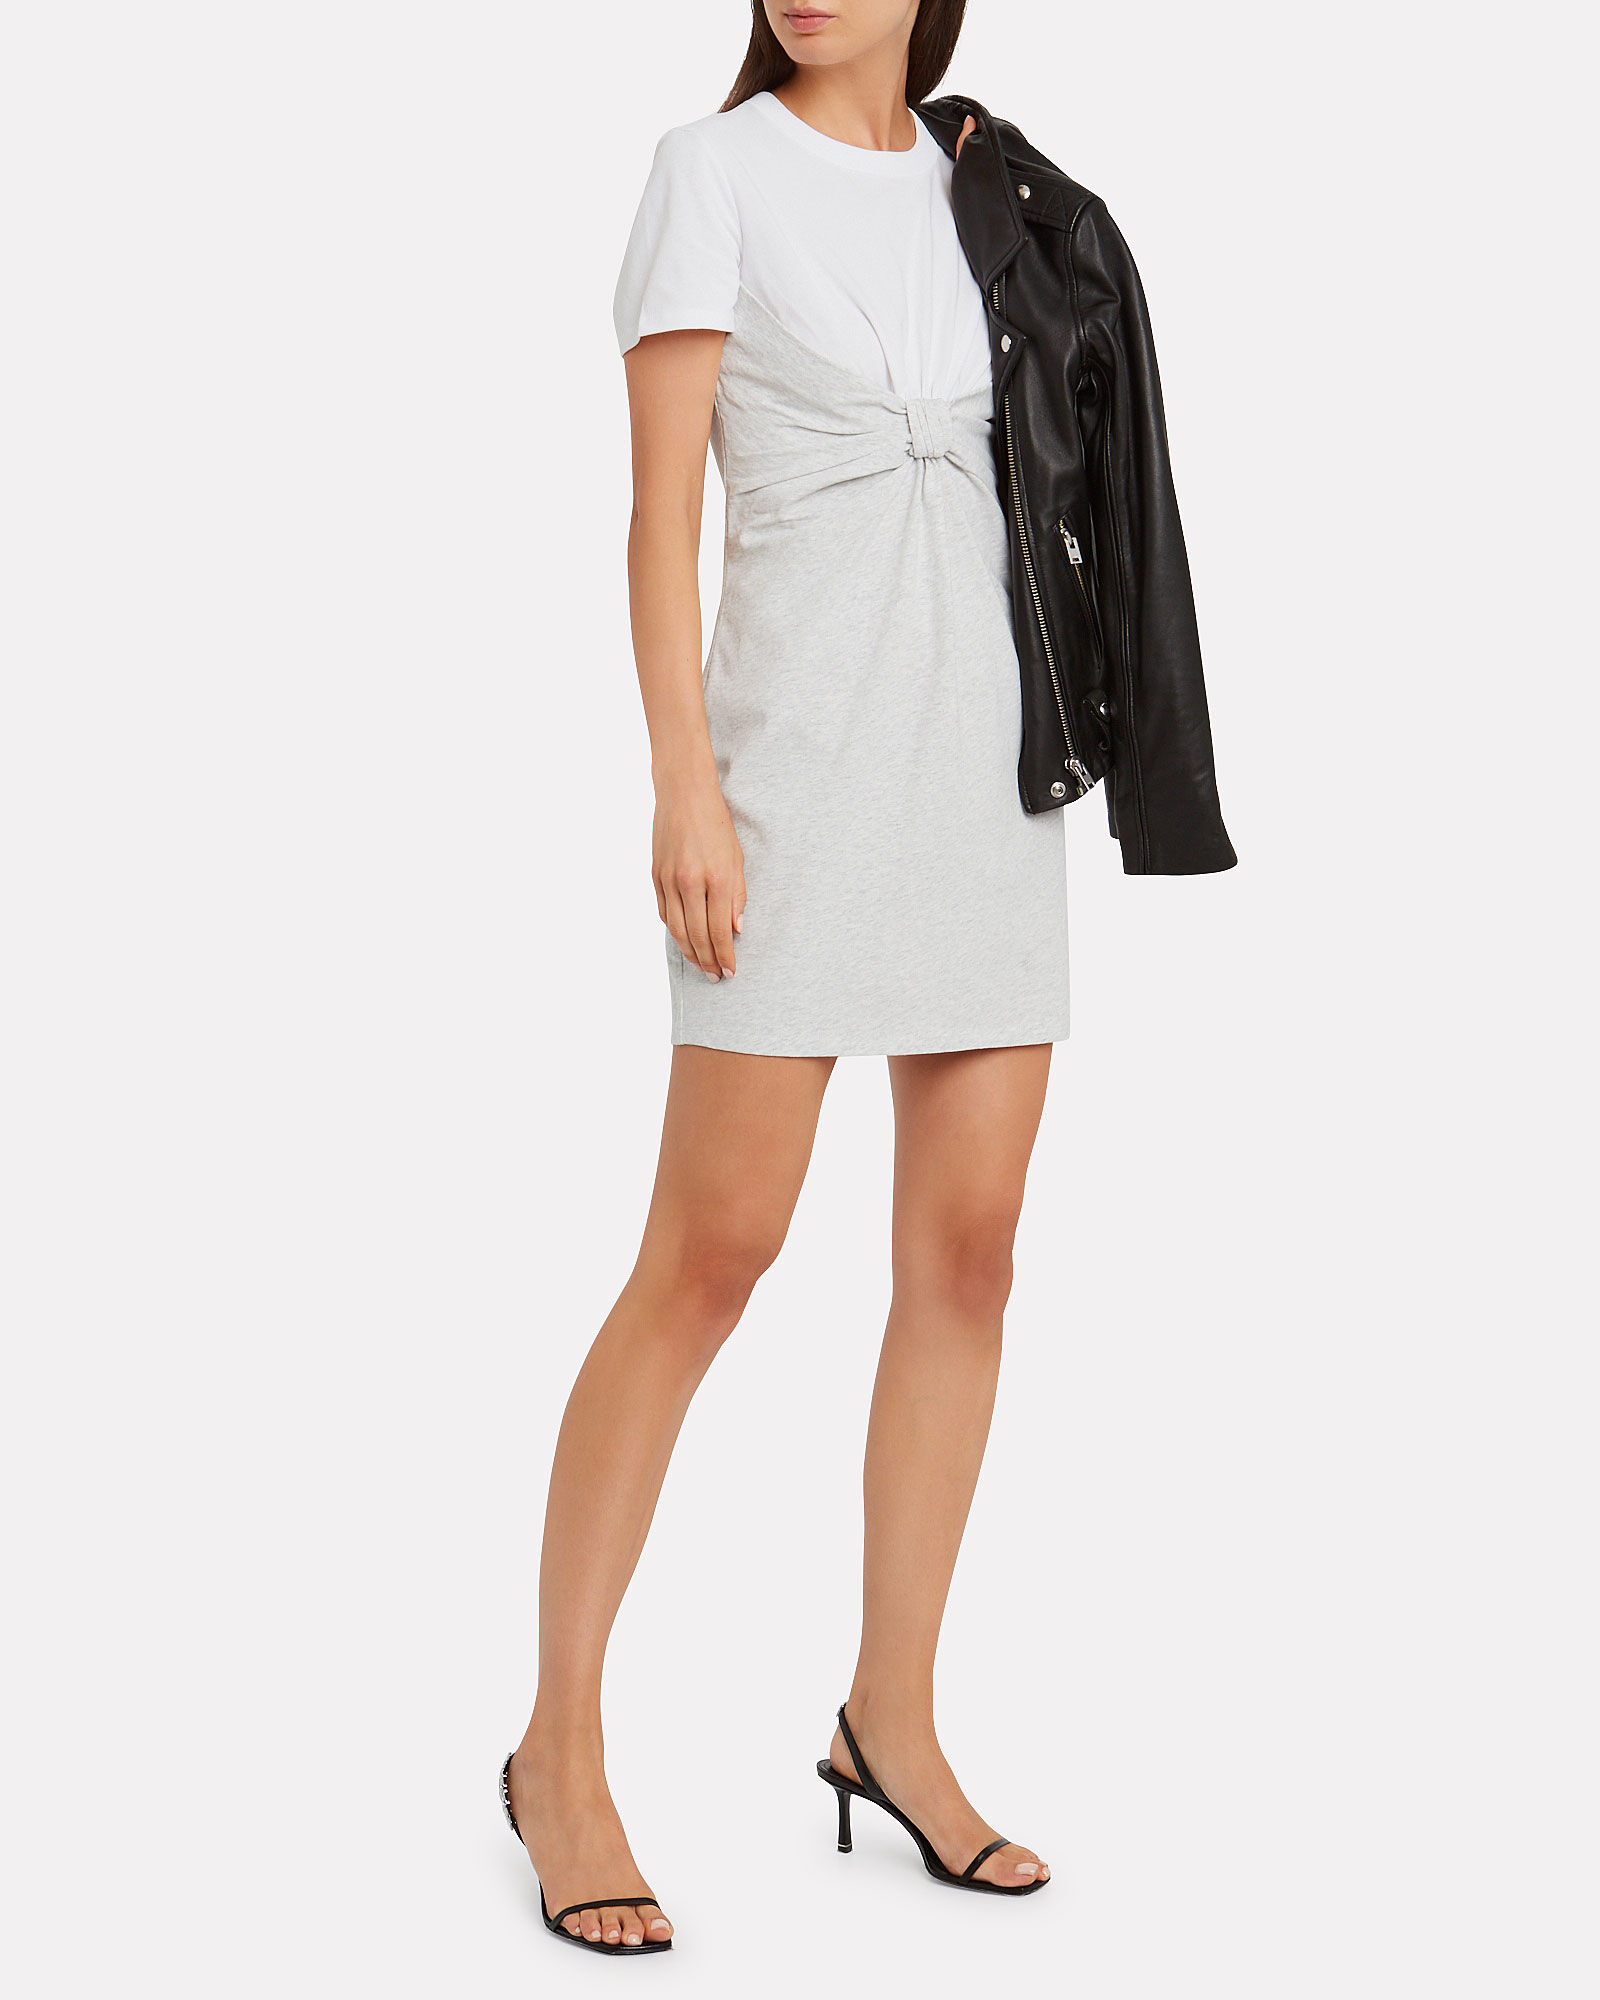 High Twist Combo T-Shirt Dress, GREY-LT, hi-res